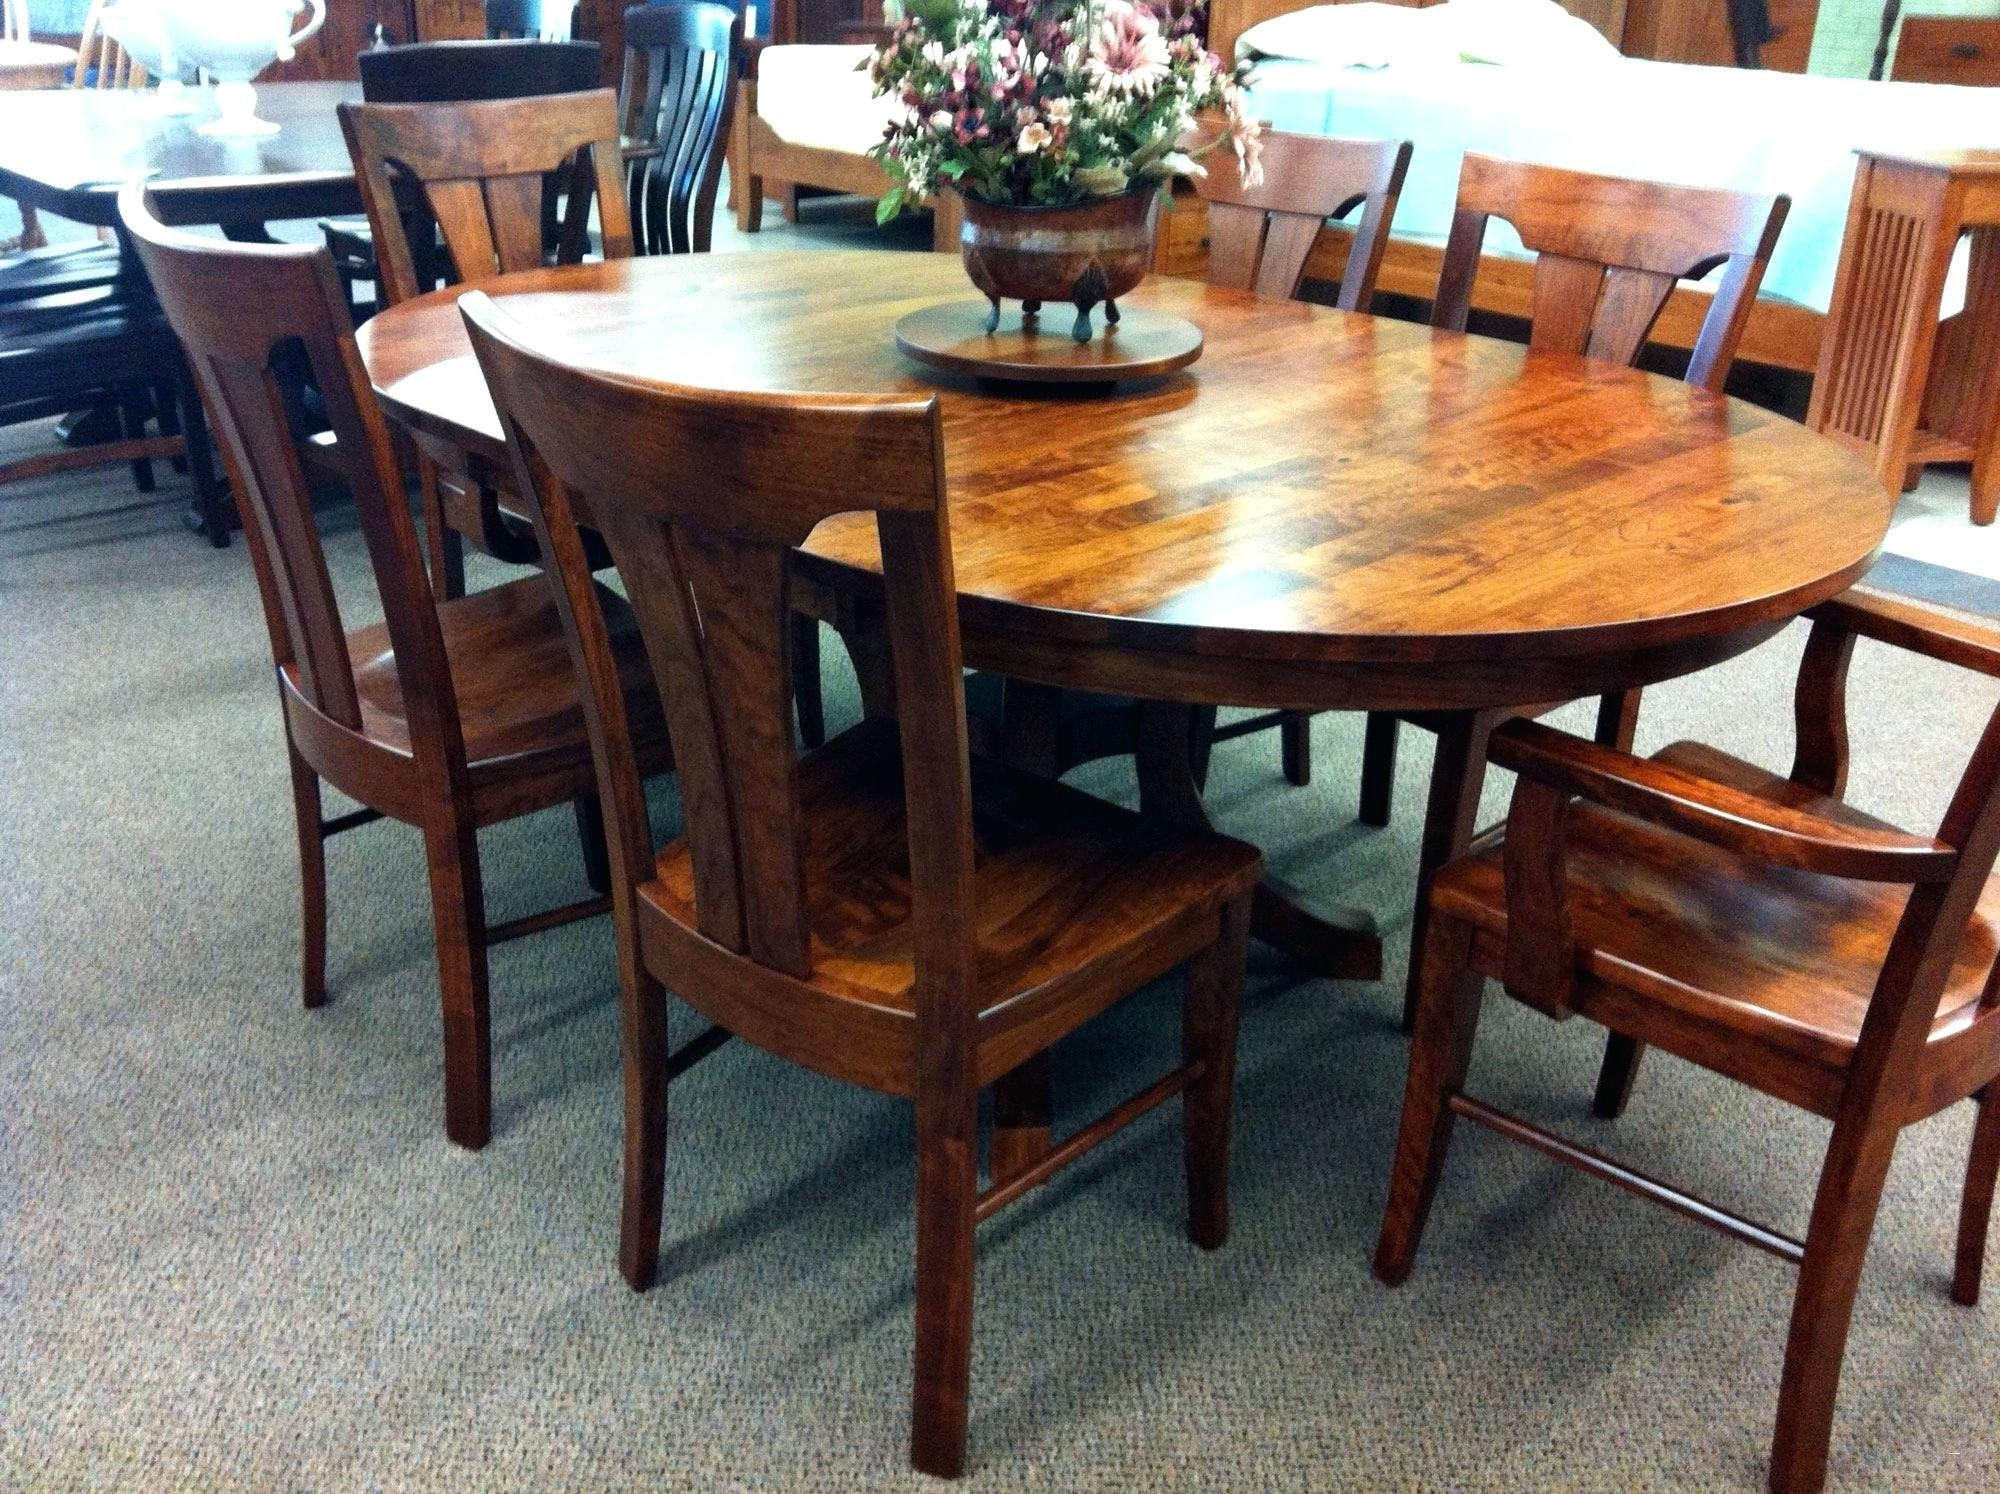 The 24 Elegant Solid Oak Round Dining Table 6 Chairs Intended For Latest Wooden Dining Tables And 6 Chairs (View 13 of 25)